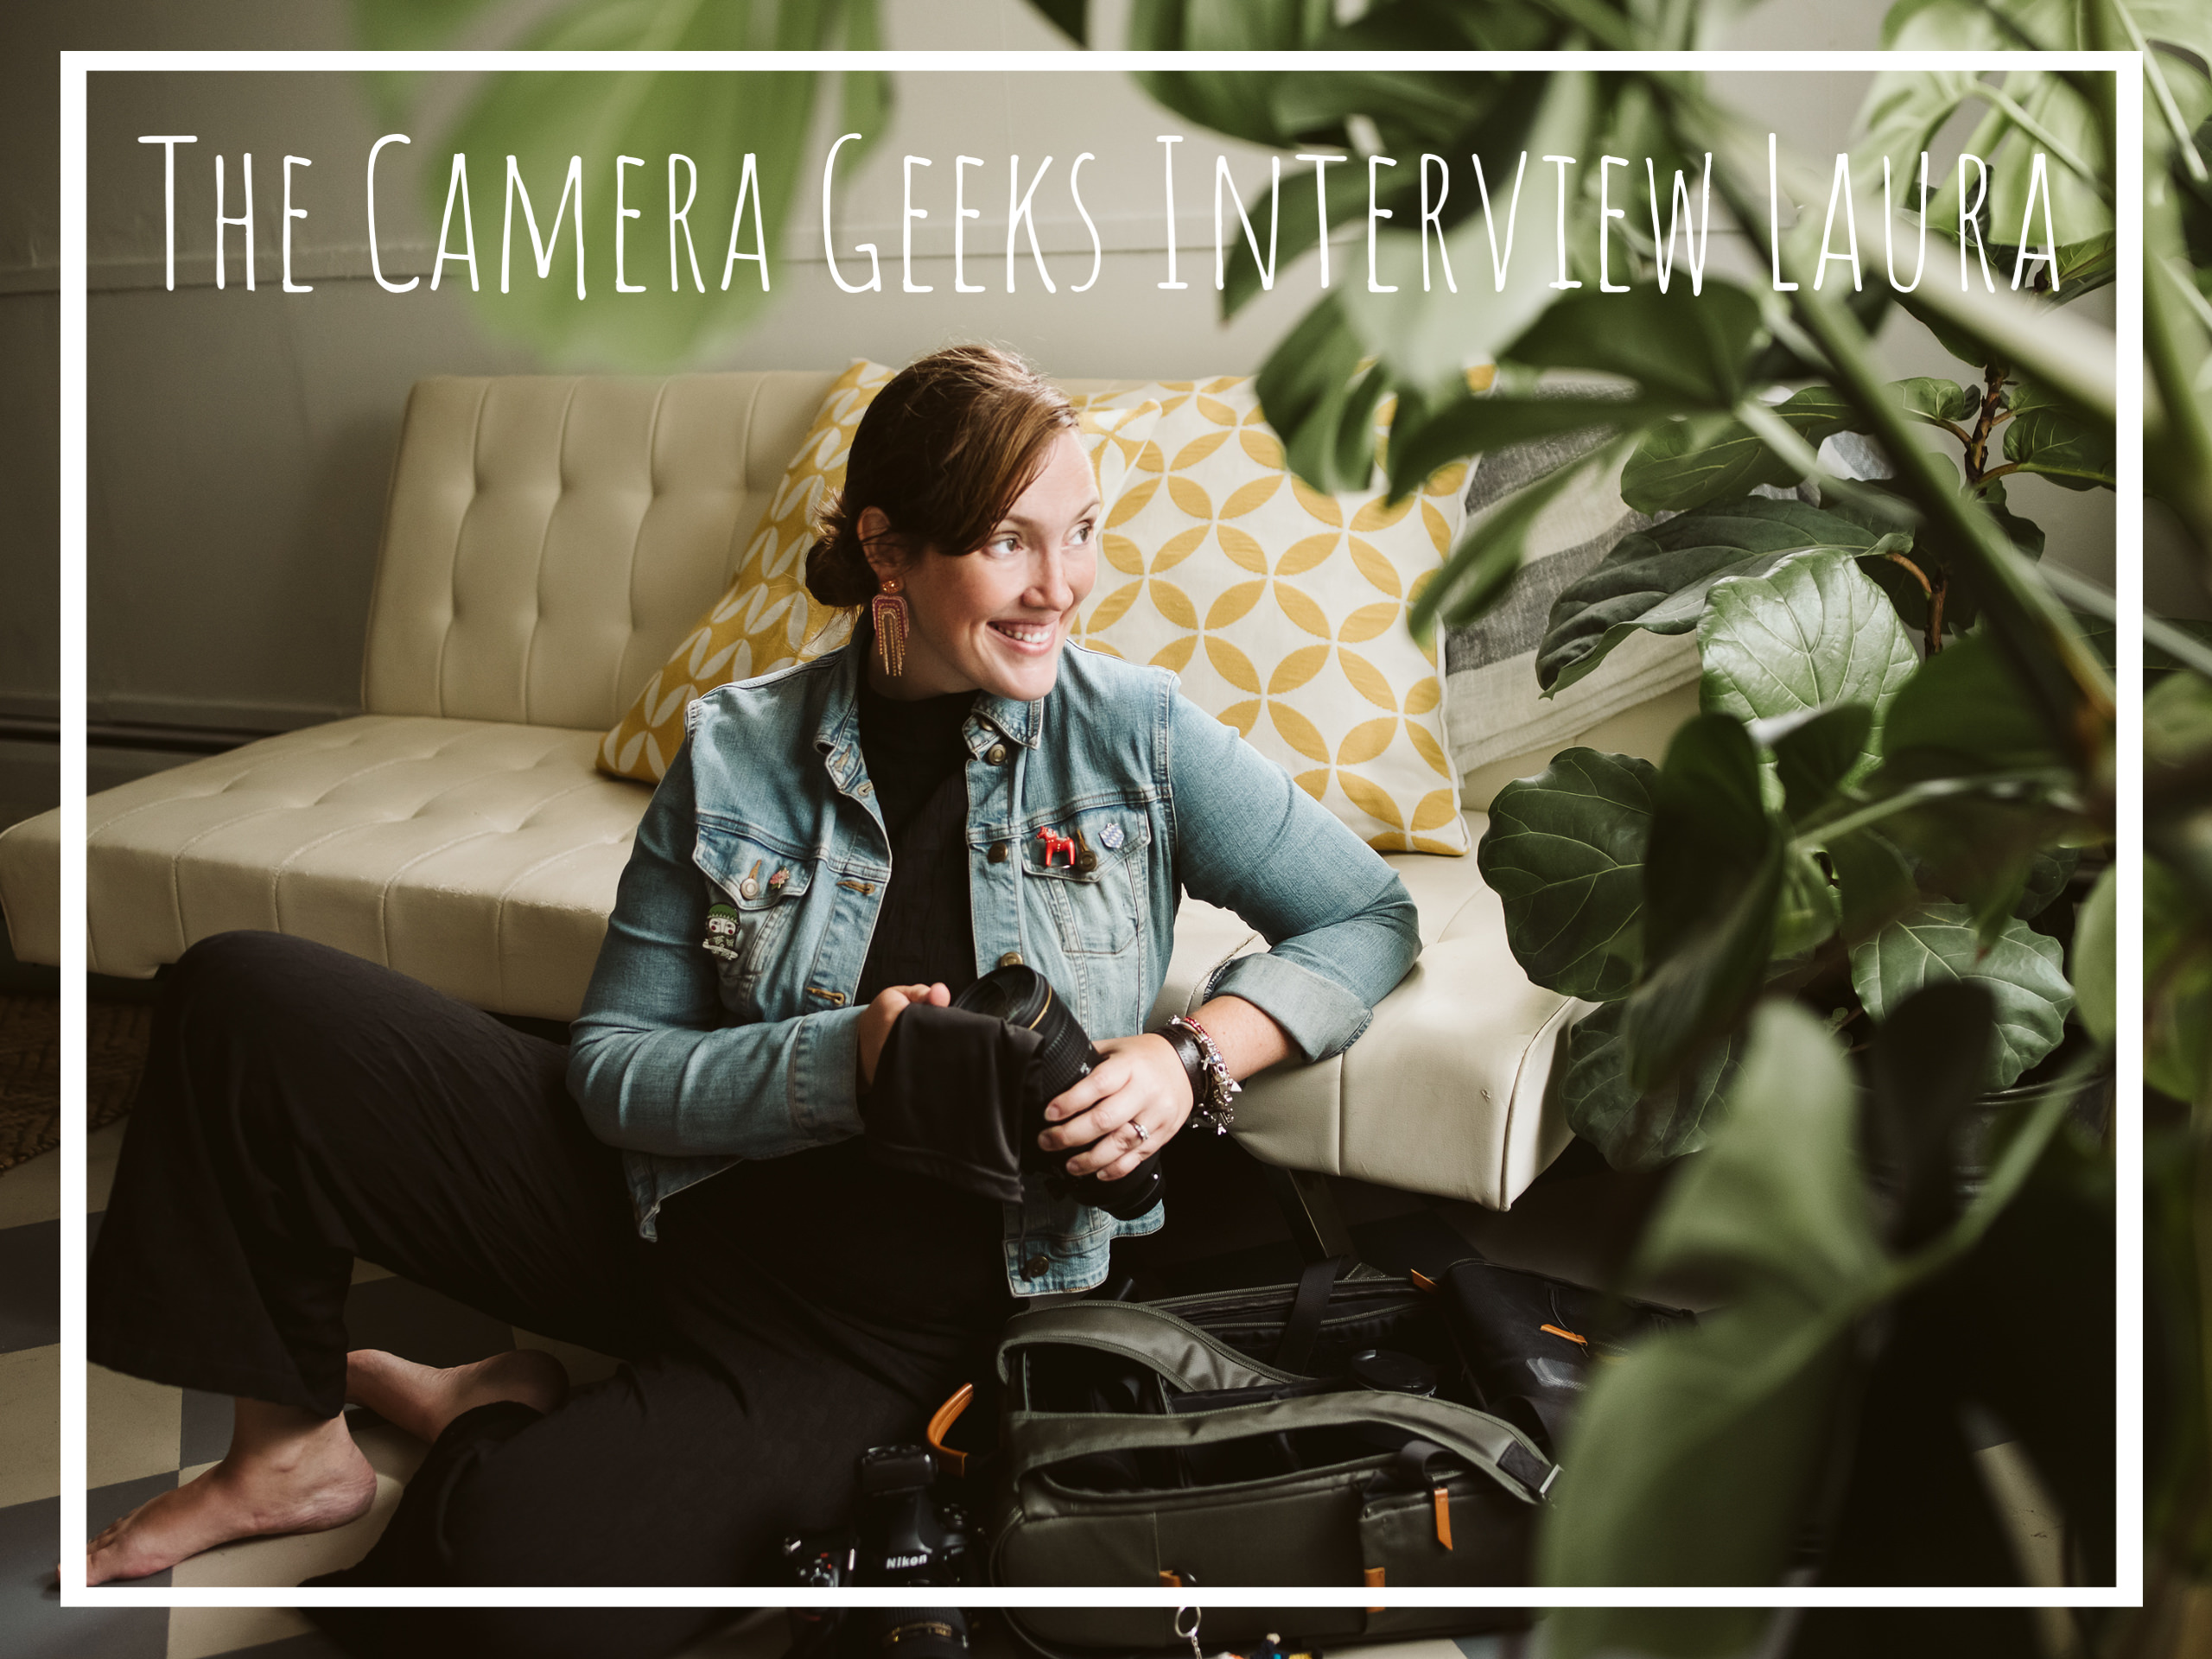 Laura's Interview with Camera Geeks